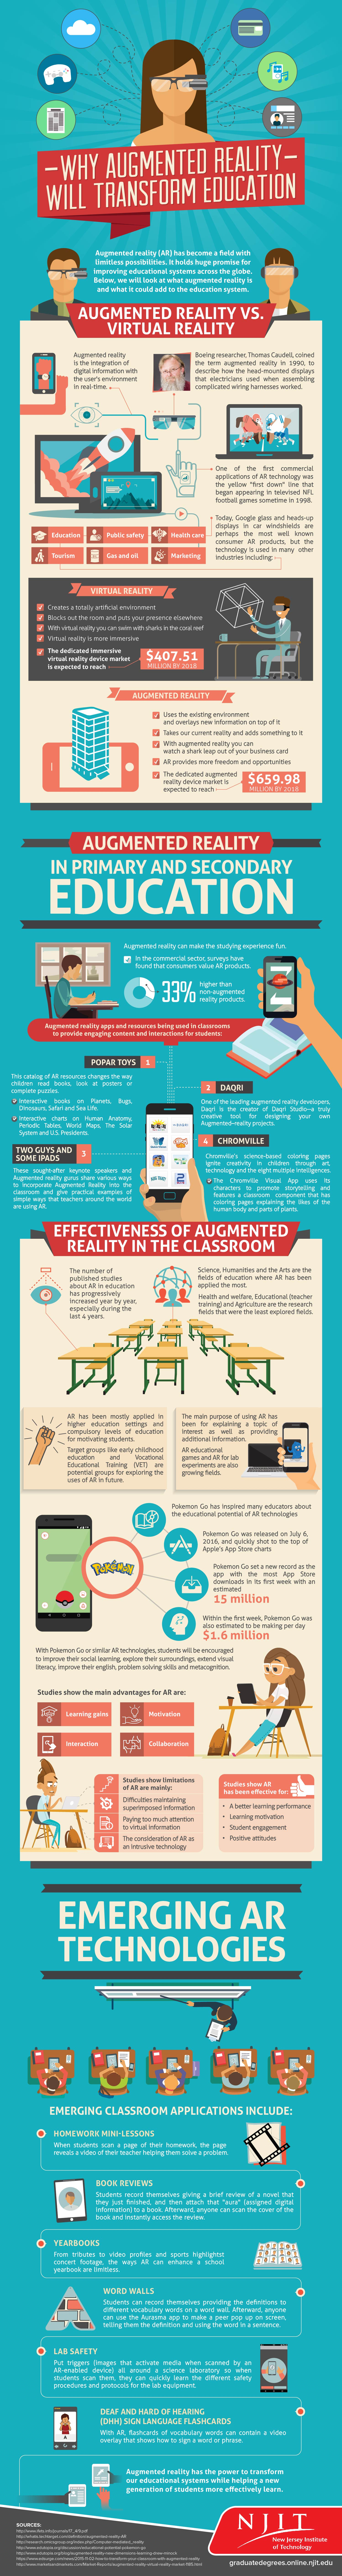 Augmented reality in education infographic